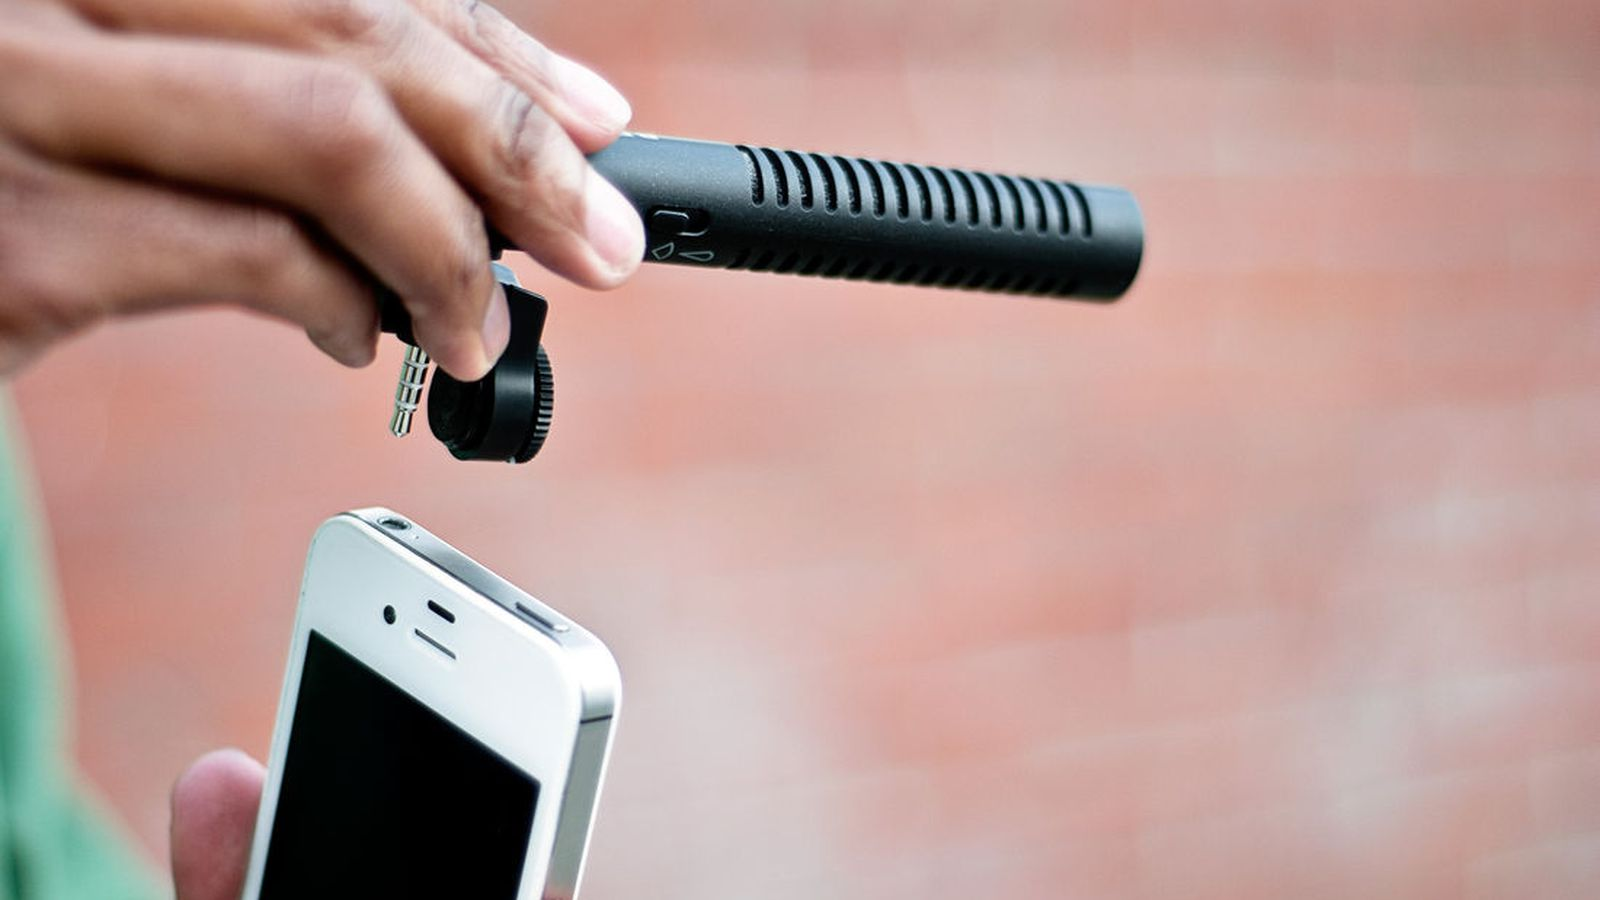 Iphone boom mic gives you better sound for 40 the verge for Microfono esterno yi 4k